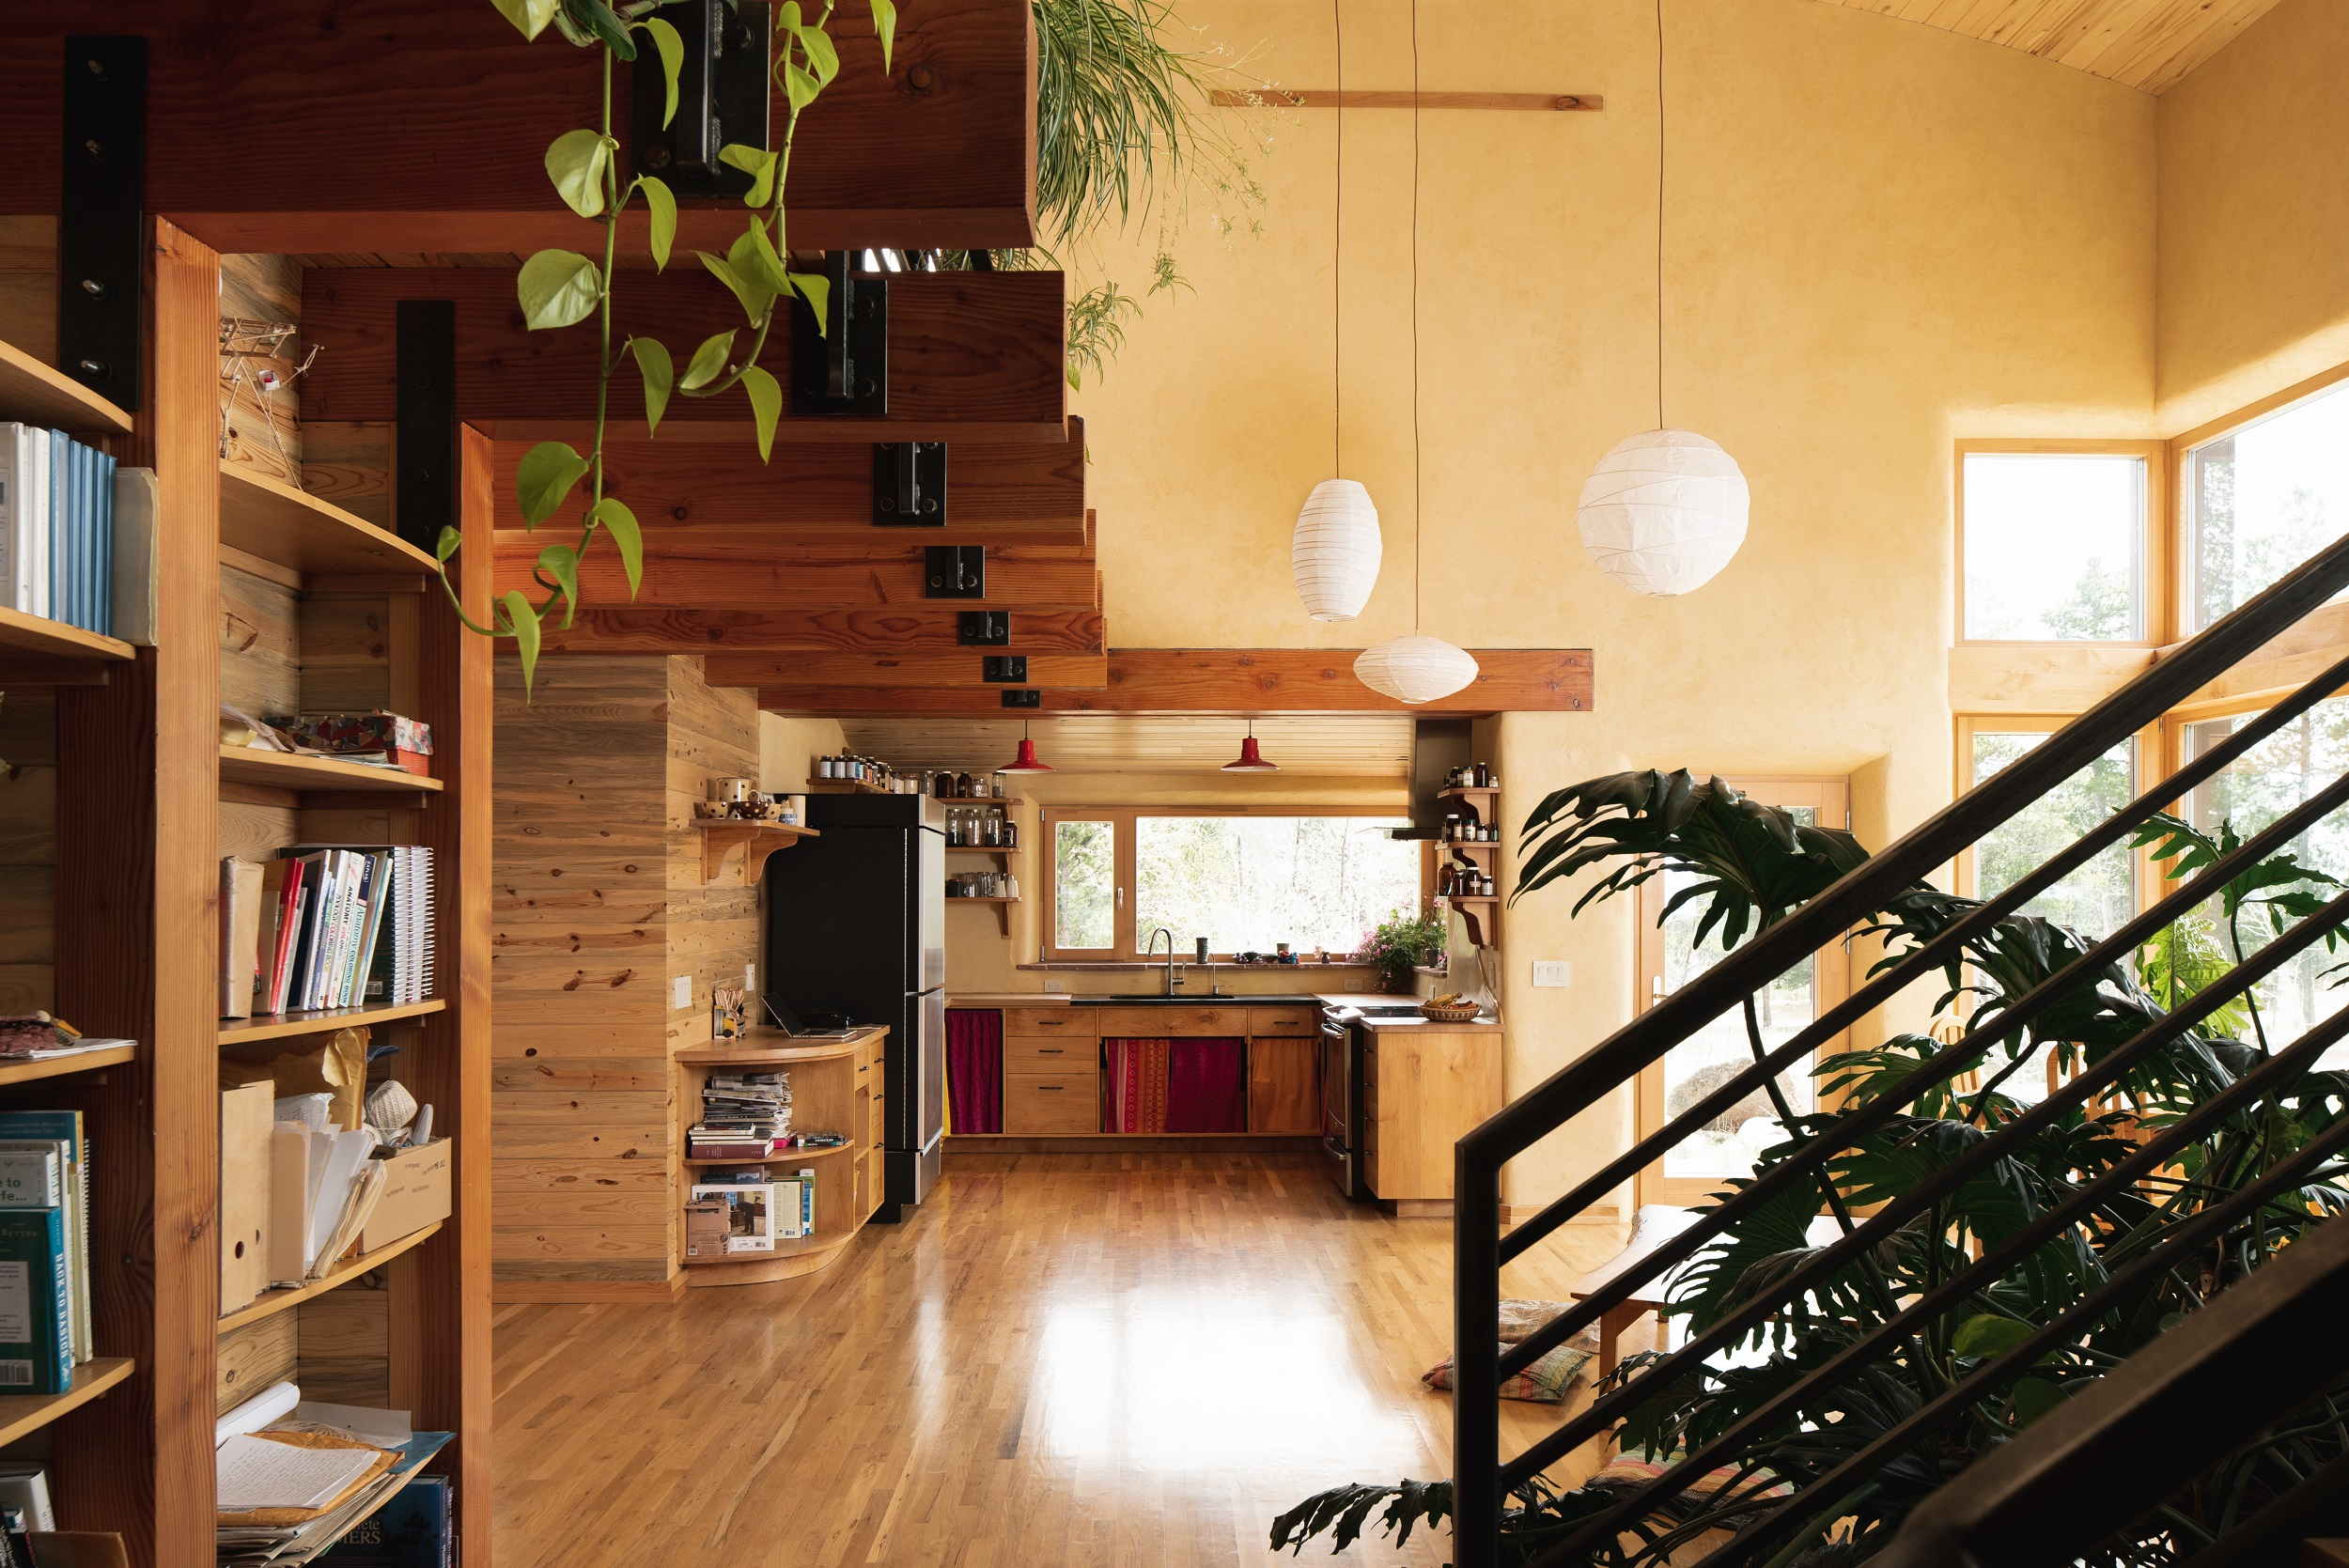 Magnolia-RD-Fuentes_Kitchen,hall,stairs.2500